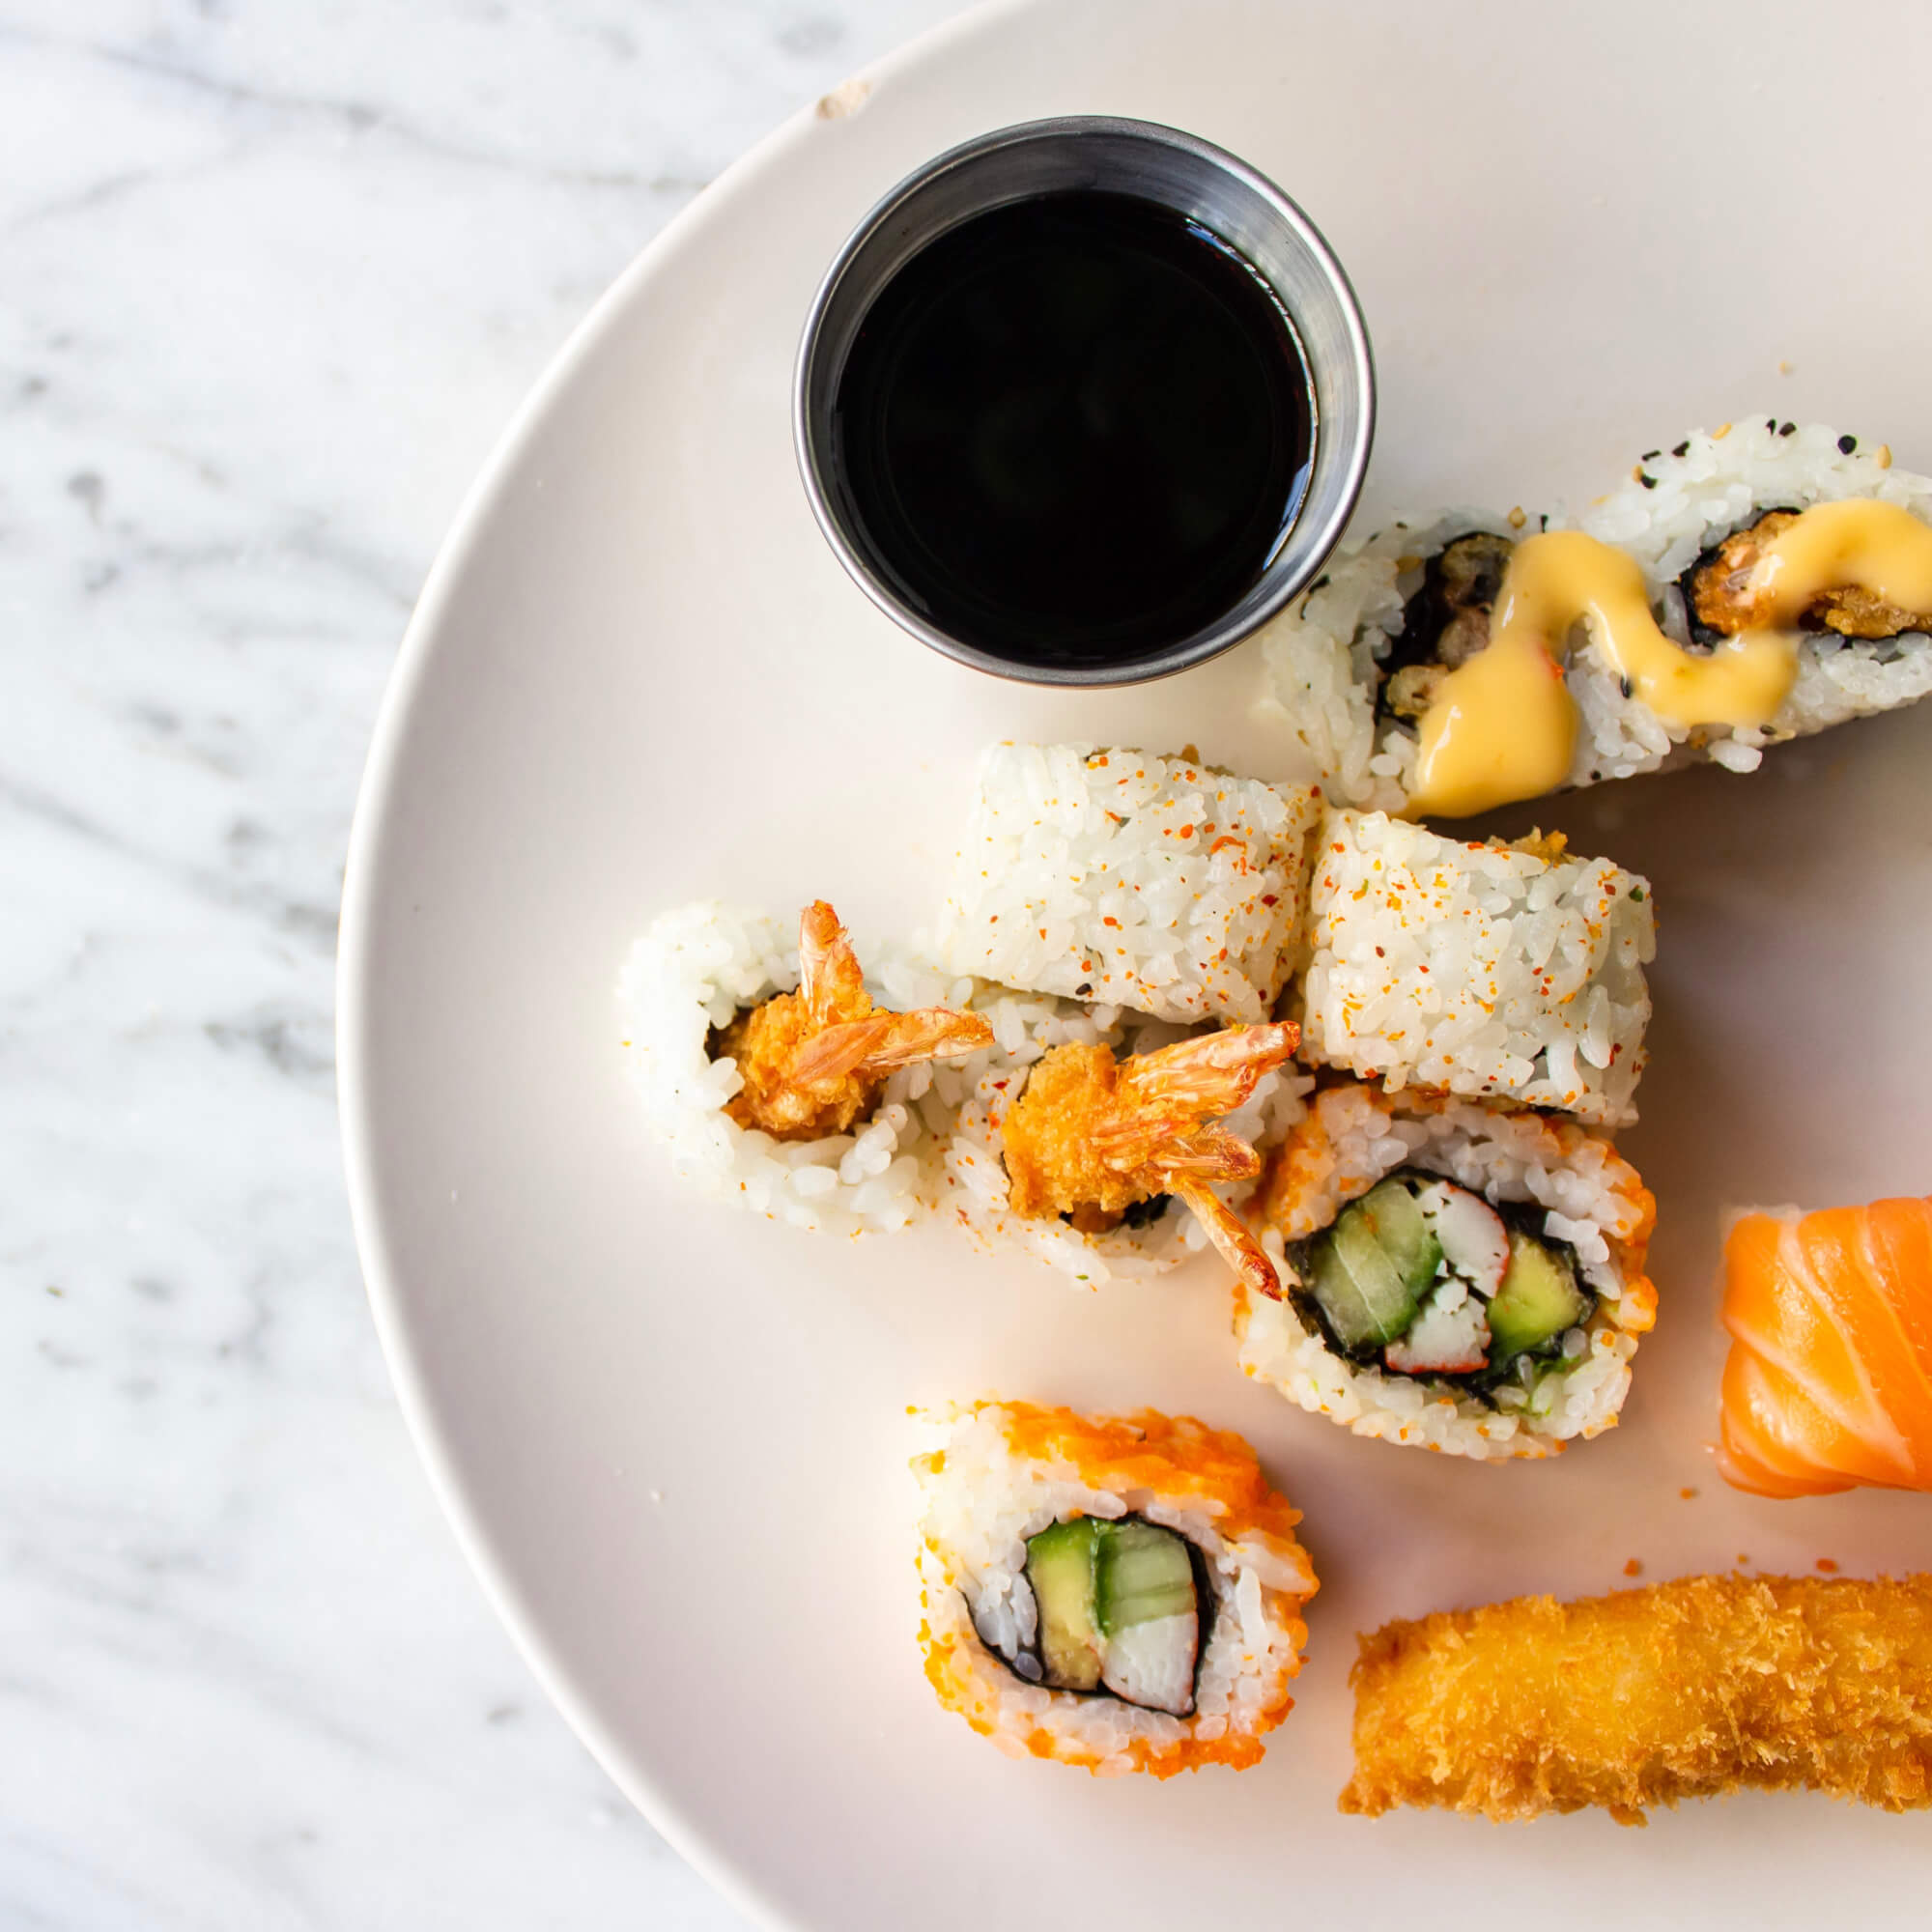 How to make sure your sushi is safe enough to eat?